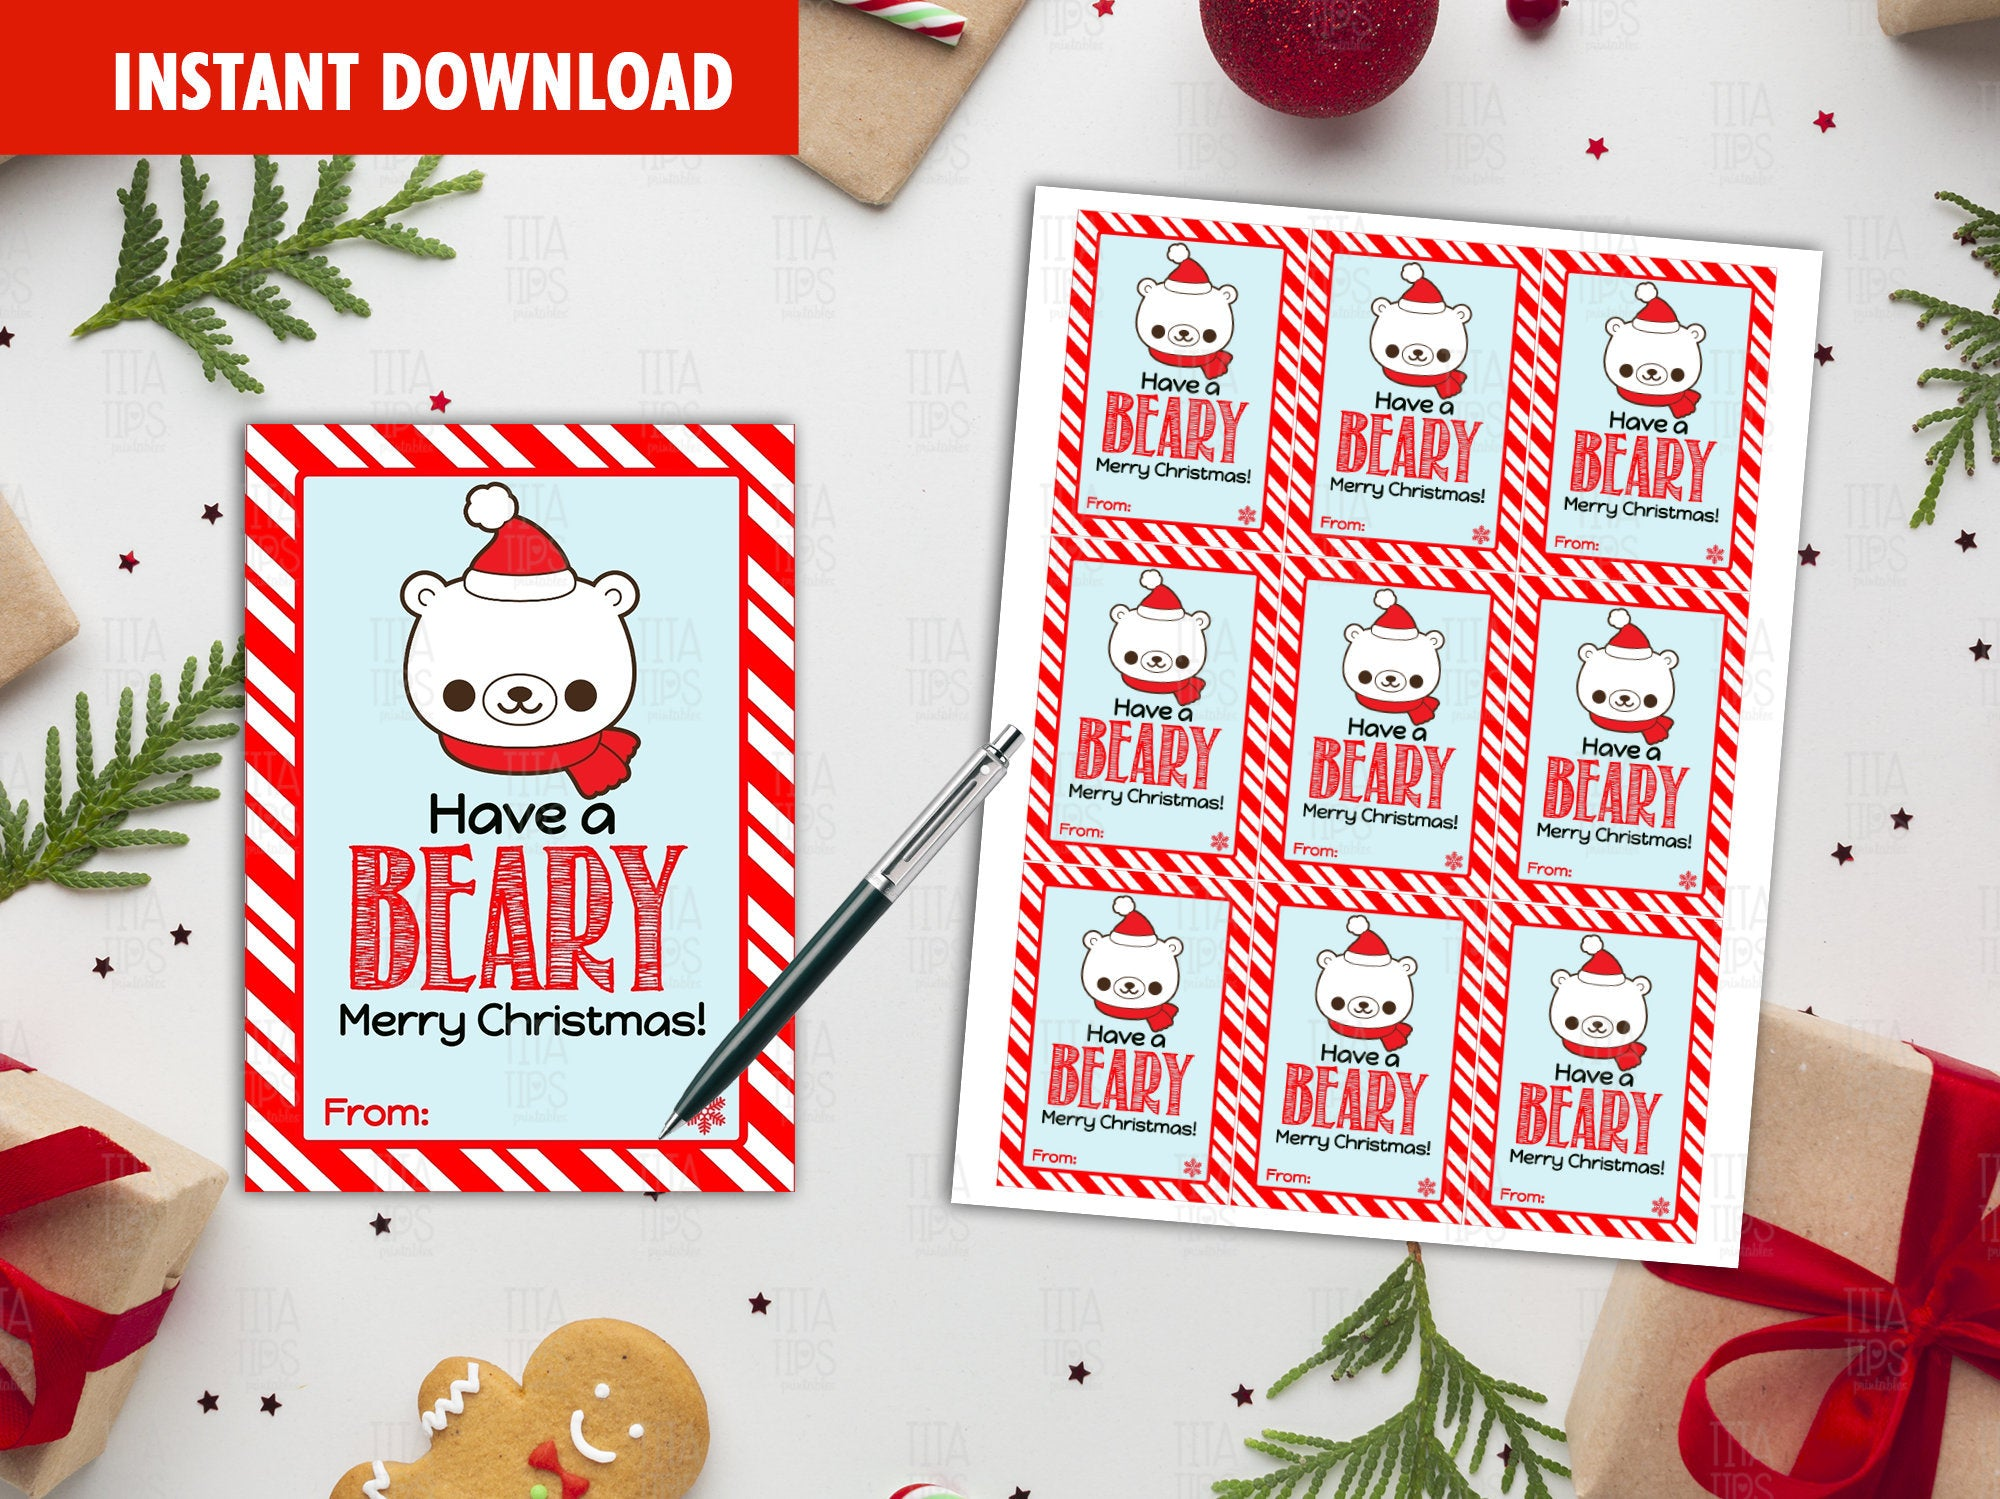 Have a Beary Merry Christmas Favor Tags, Happy Holidays Printable Card, Instant Download - TitaTipsPrintables